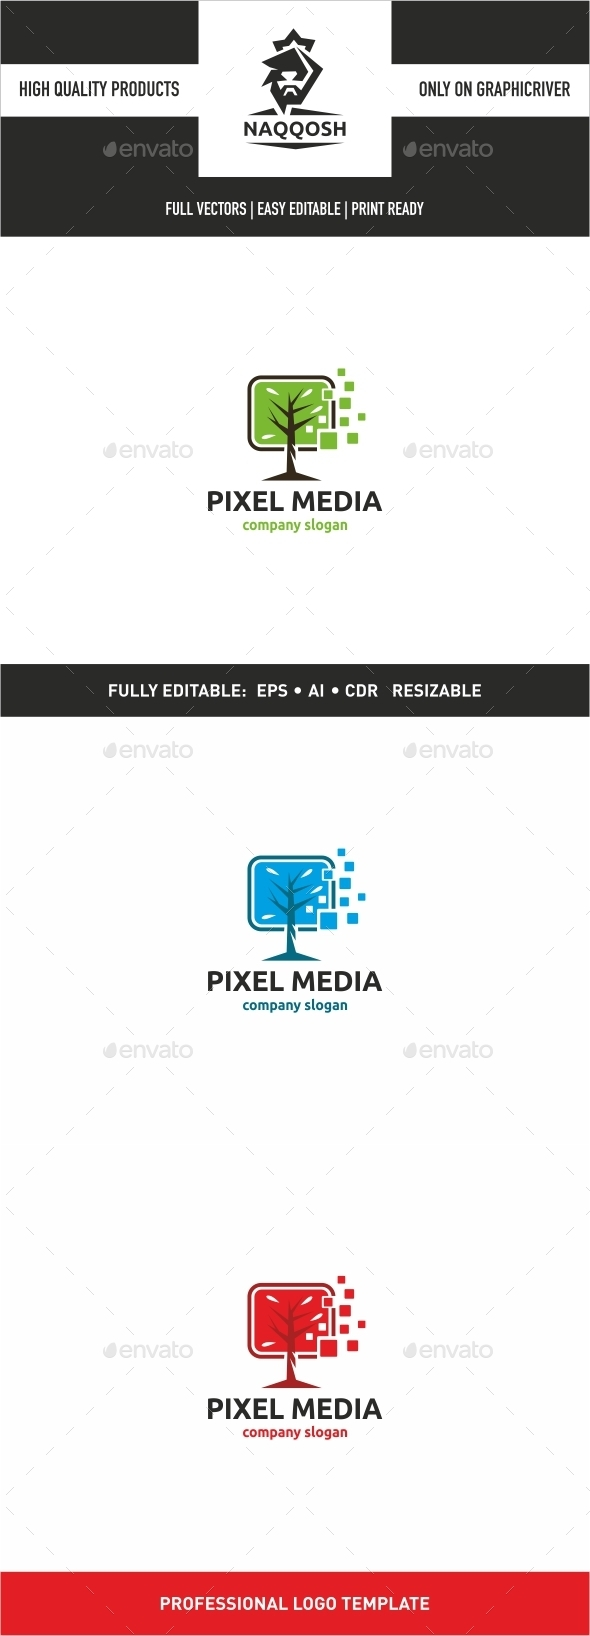 GraphicRiver Pixel Media 10028716